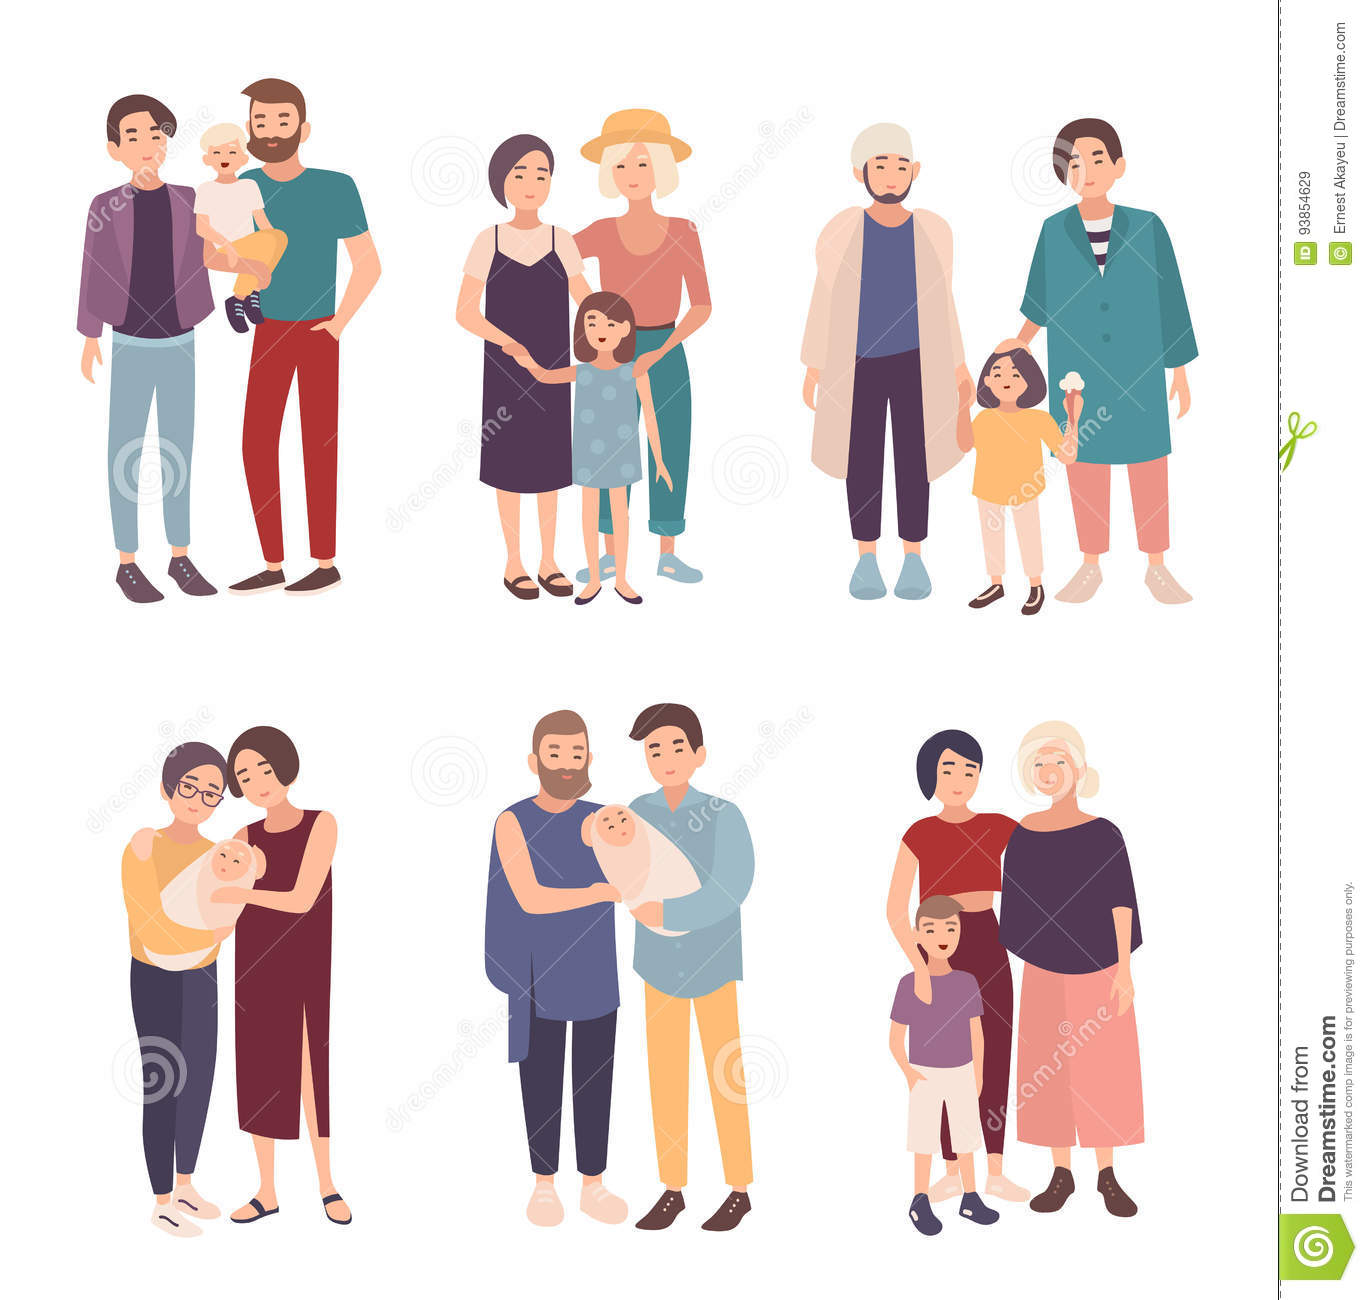 Gay Family vector images